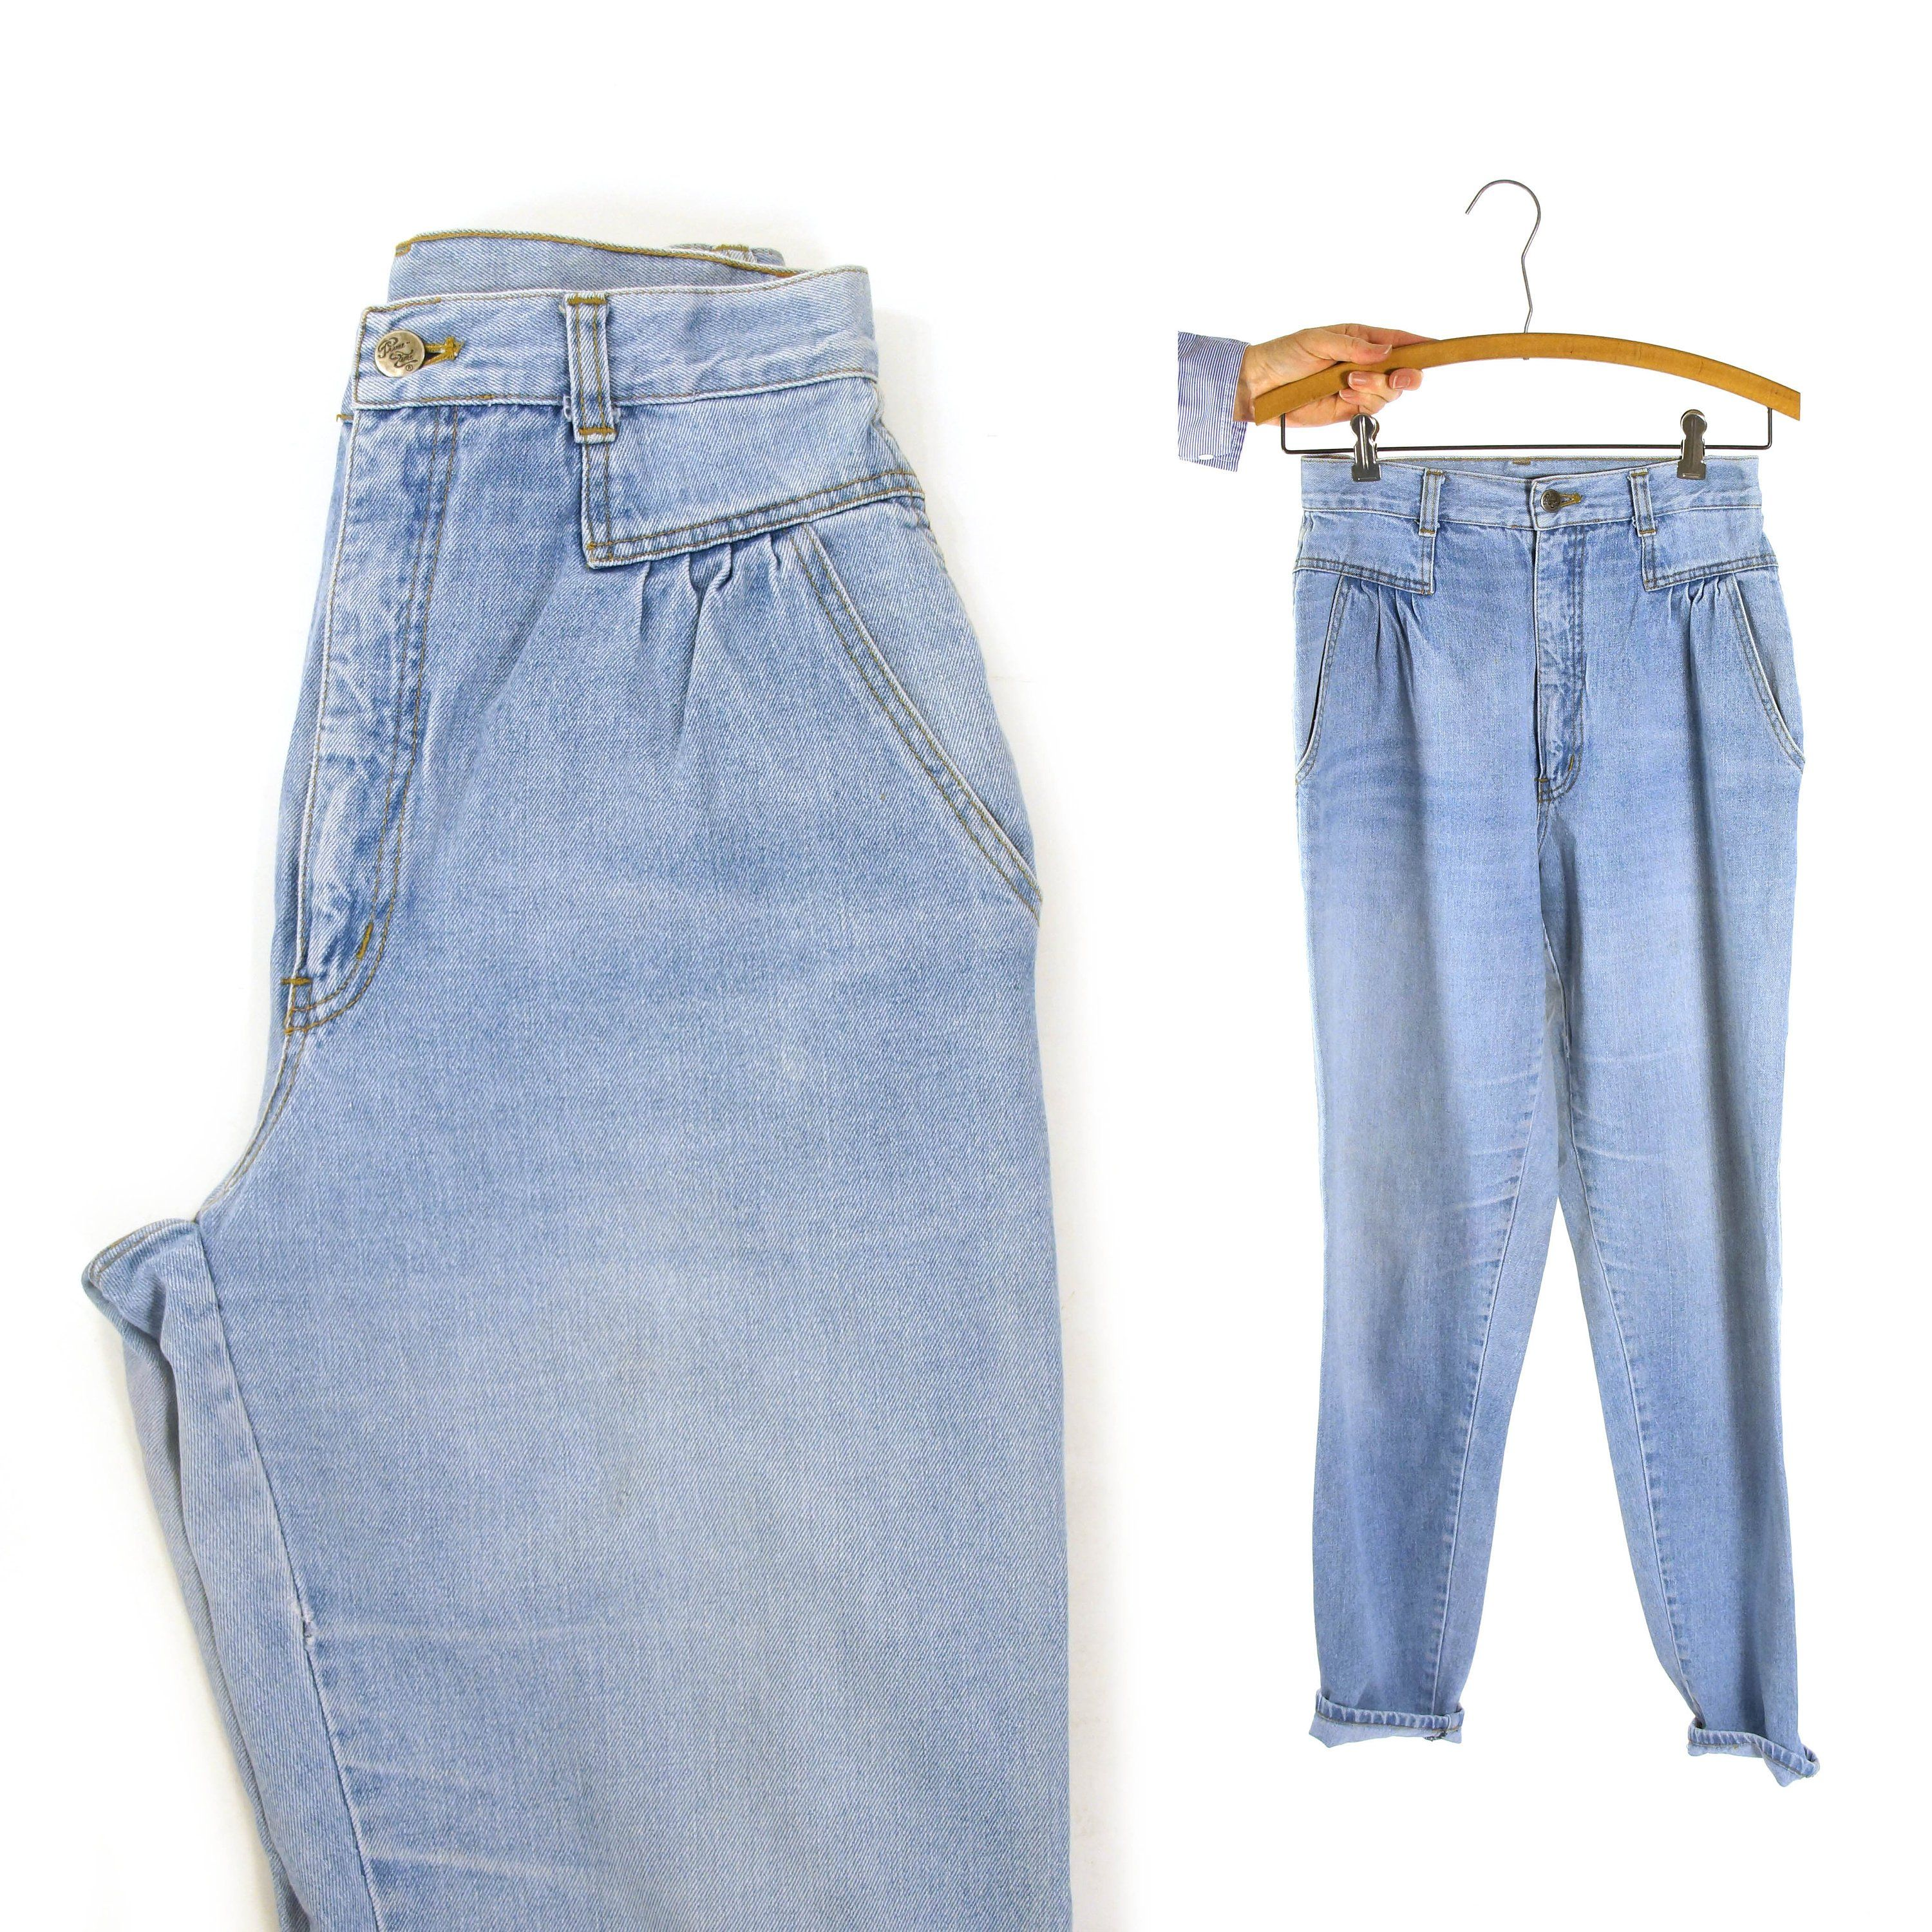 100/% Cotton Vintage 80s Women/'s Acid Wash Pleated Denim Shorts High Waisted Super Cute Pockets. Comfortable Waist 27 With Cuff